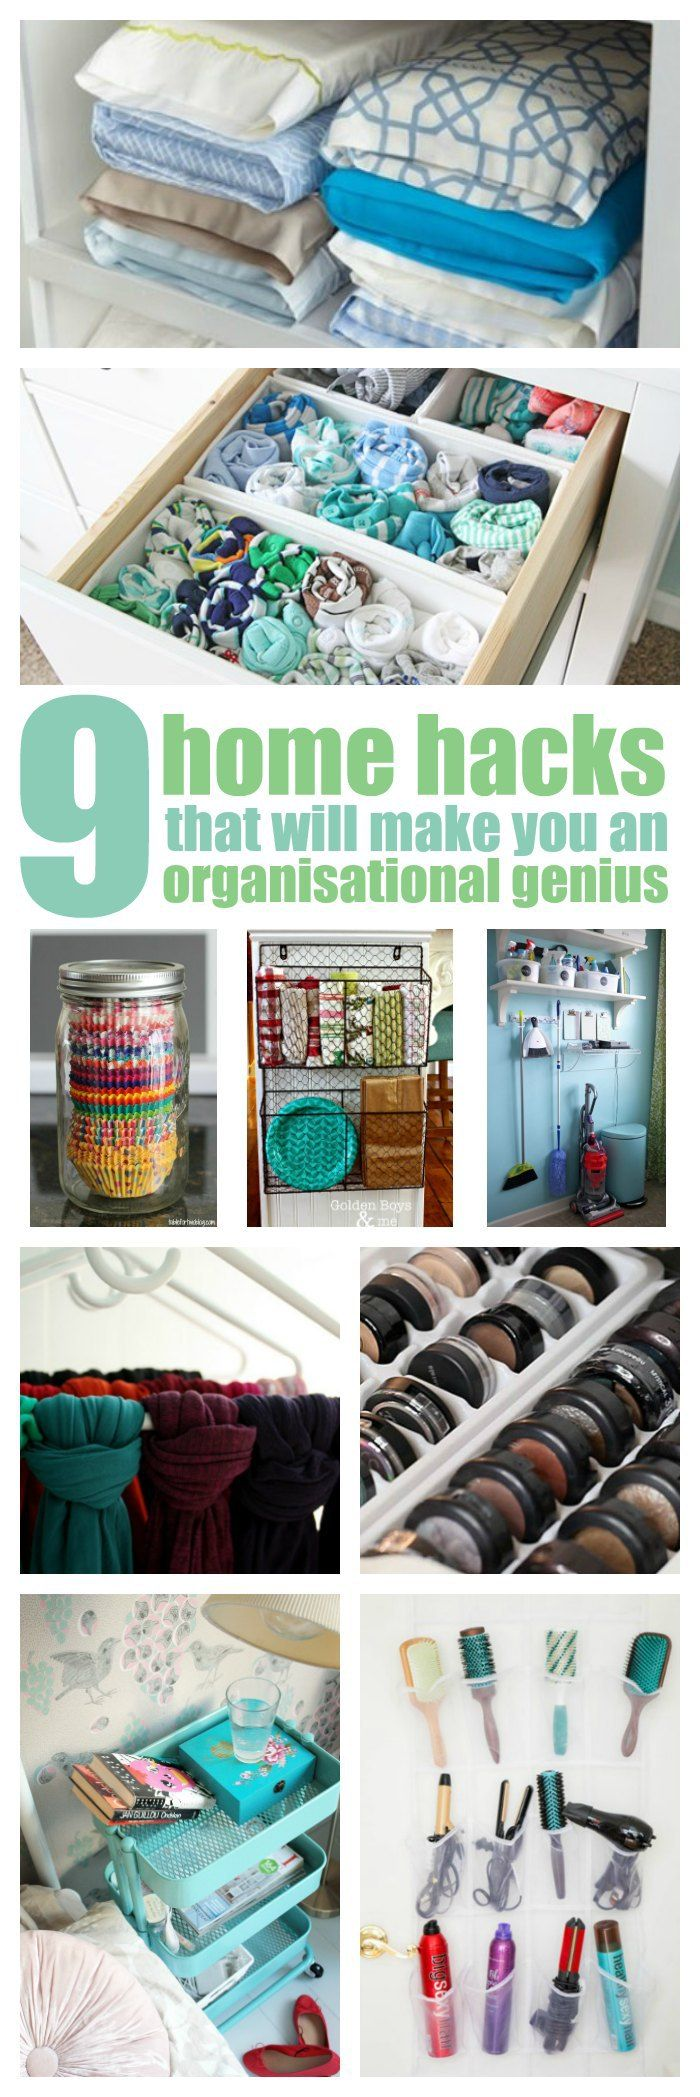 These 9 home hacks that'll made you an organisation genius are AWESOME! I'm so happy I found these CLEVER tips! Now I can have a cute and organised house! Definitely repinning for later and you should, too!